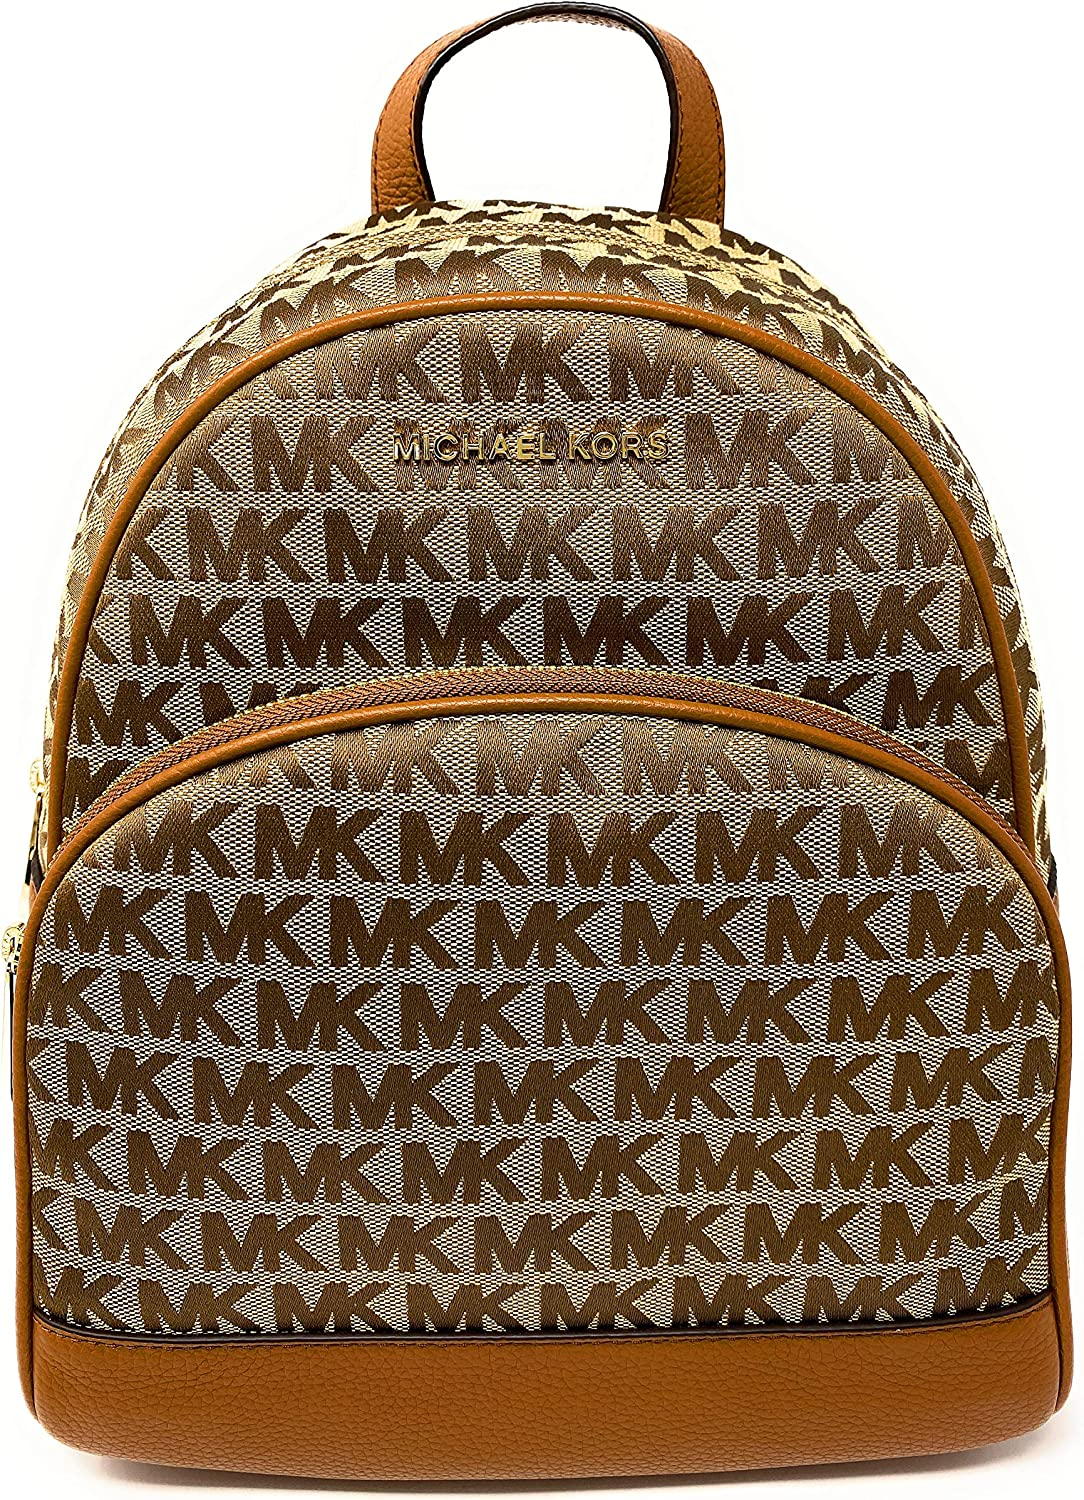 Michael Kors Women's Abbey Large Backpack